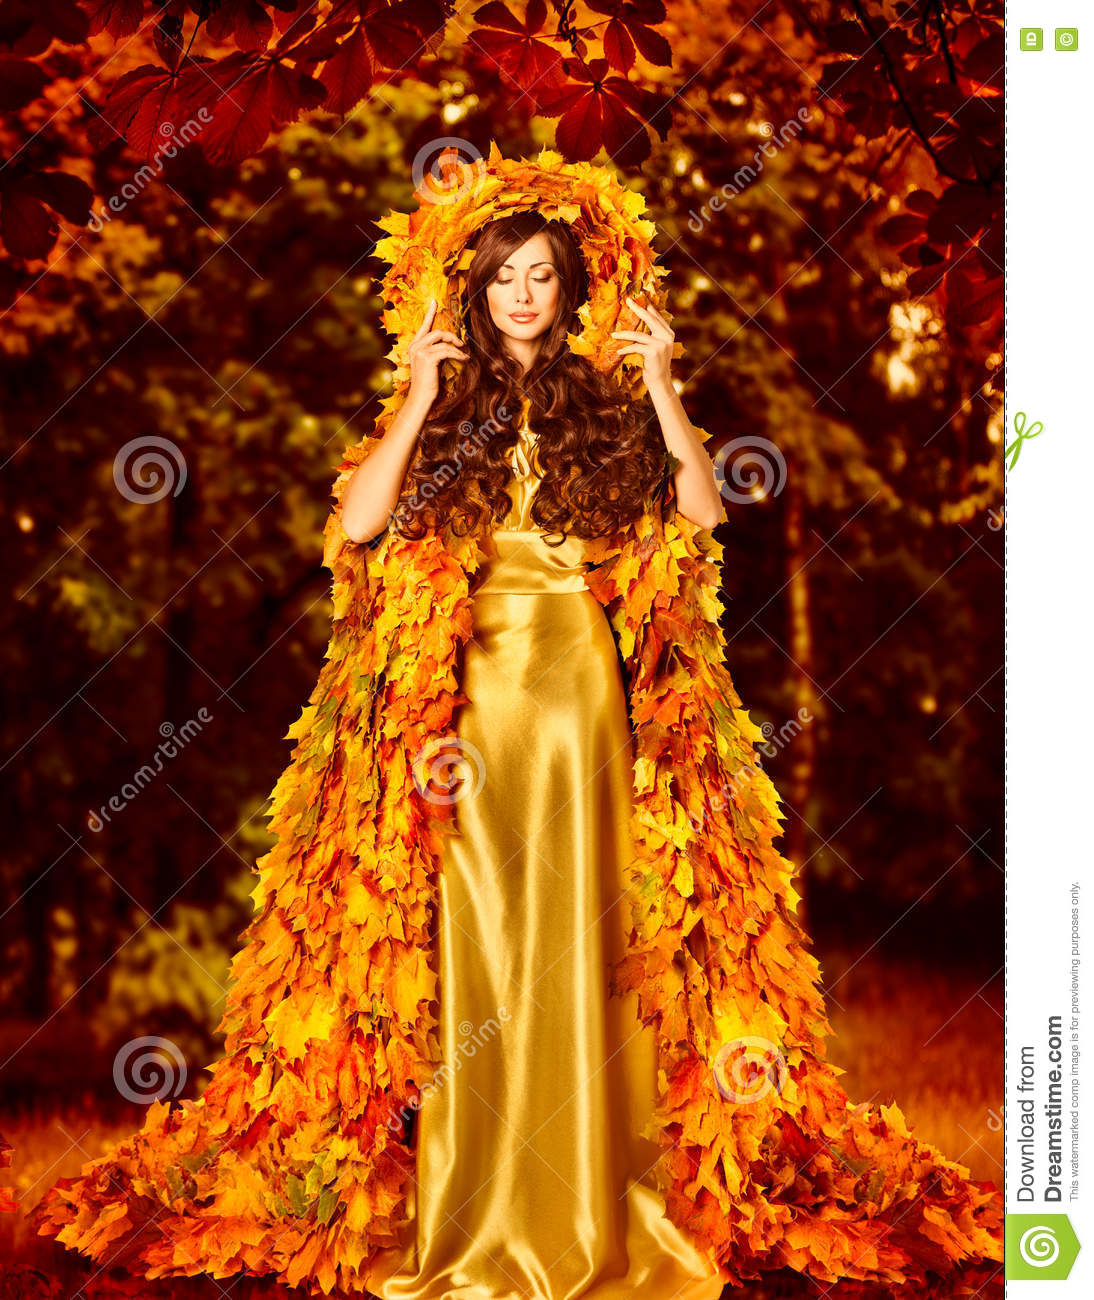 Vestido de Autumn Fashion Woman Fall Leaves, capa al aire libre de la hoja